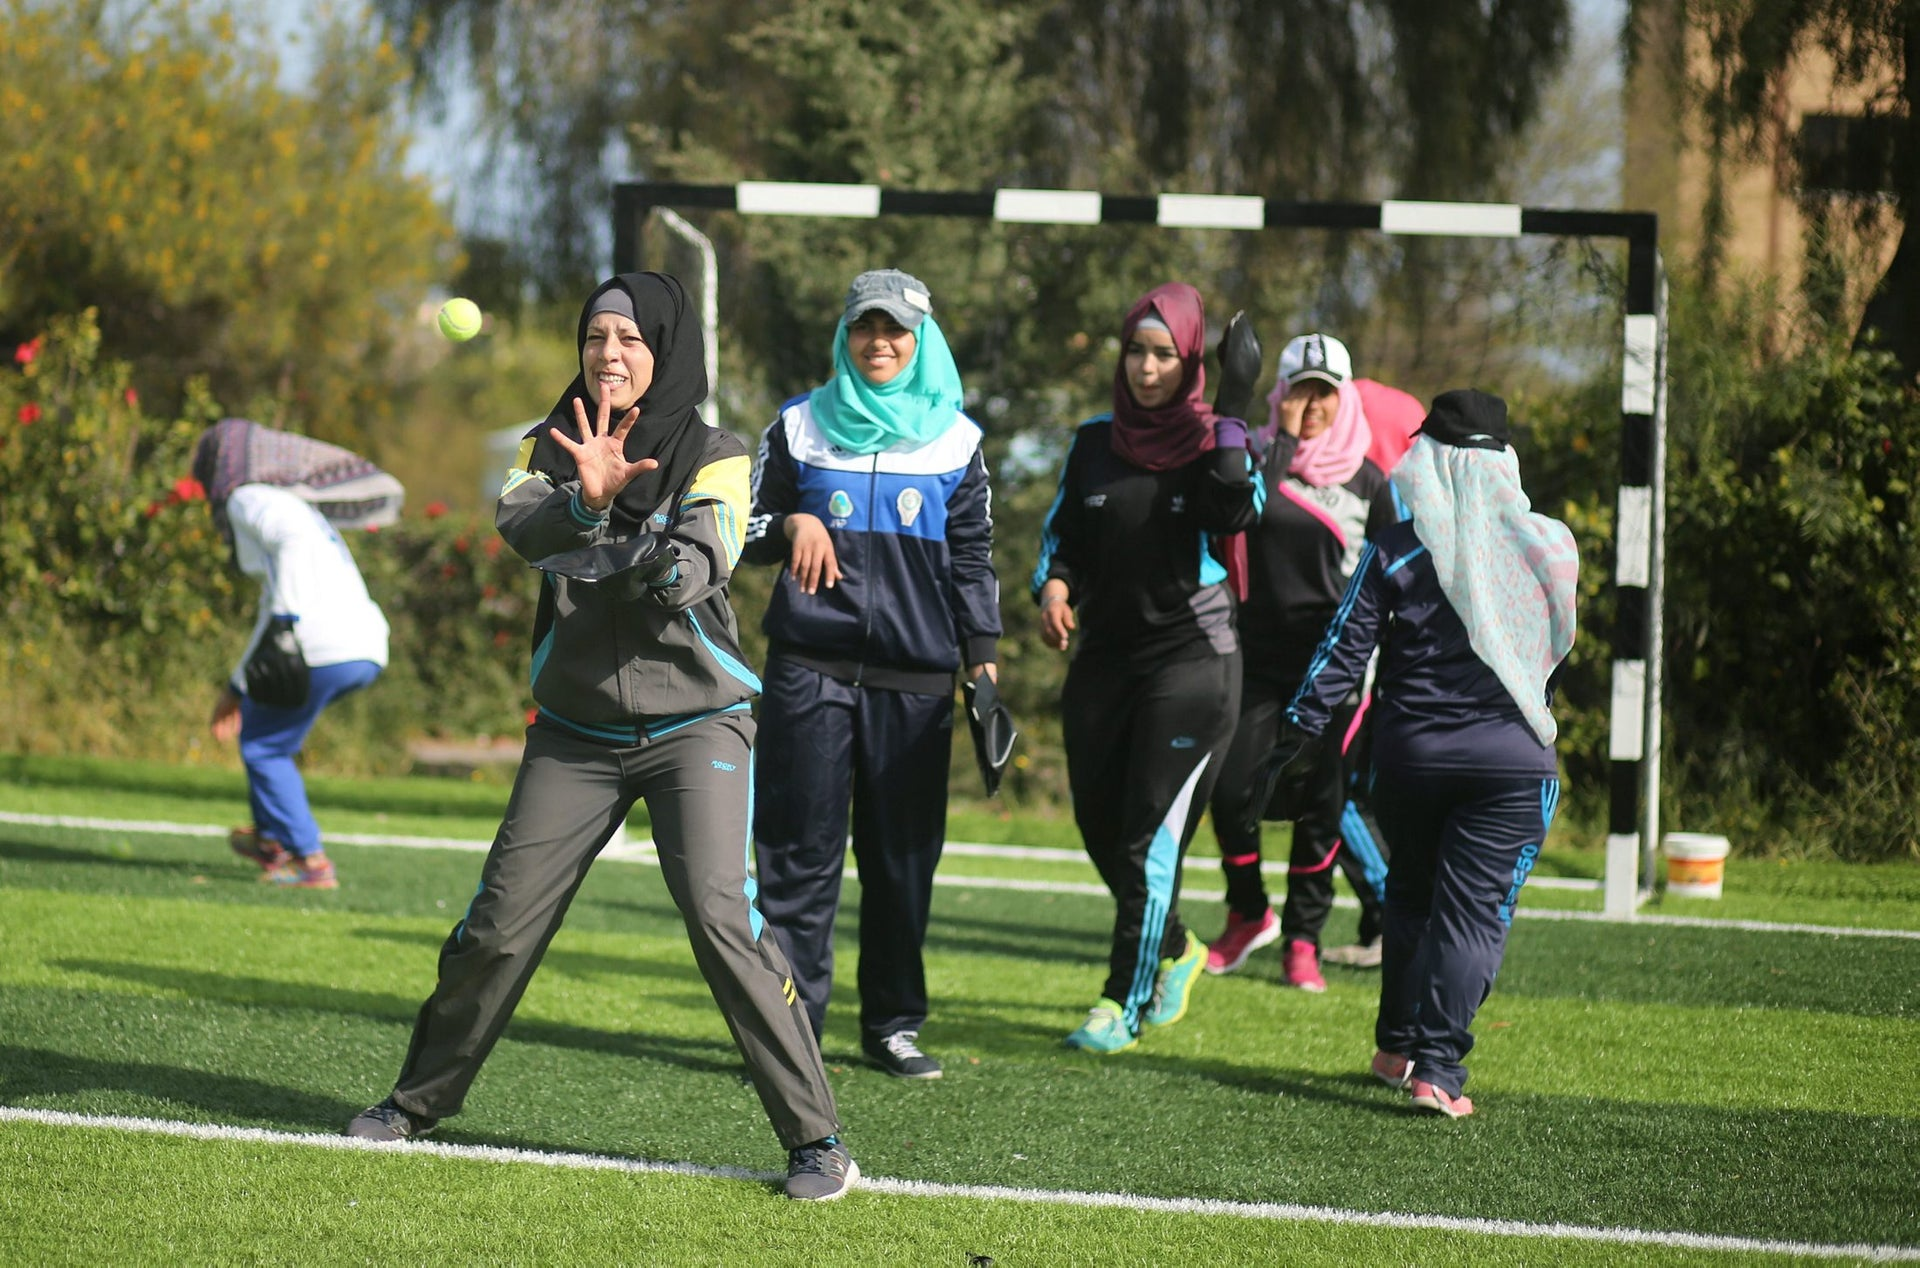 Palestinian women take part in a baseball training session in Khan Younis in the southern Gaza Strip March 19, 2017. Picture taken March 19, 2017.